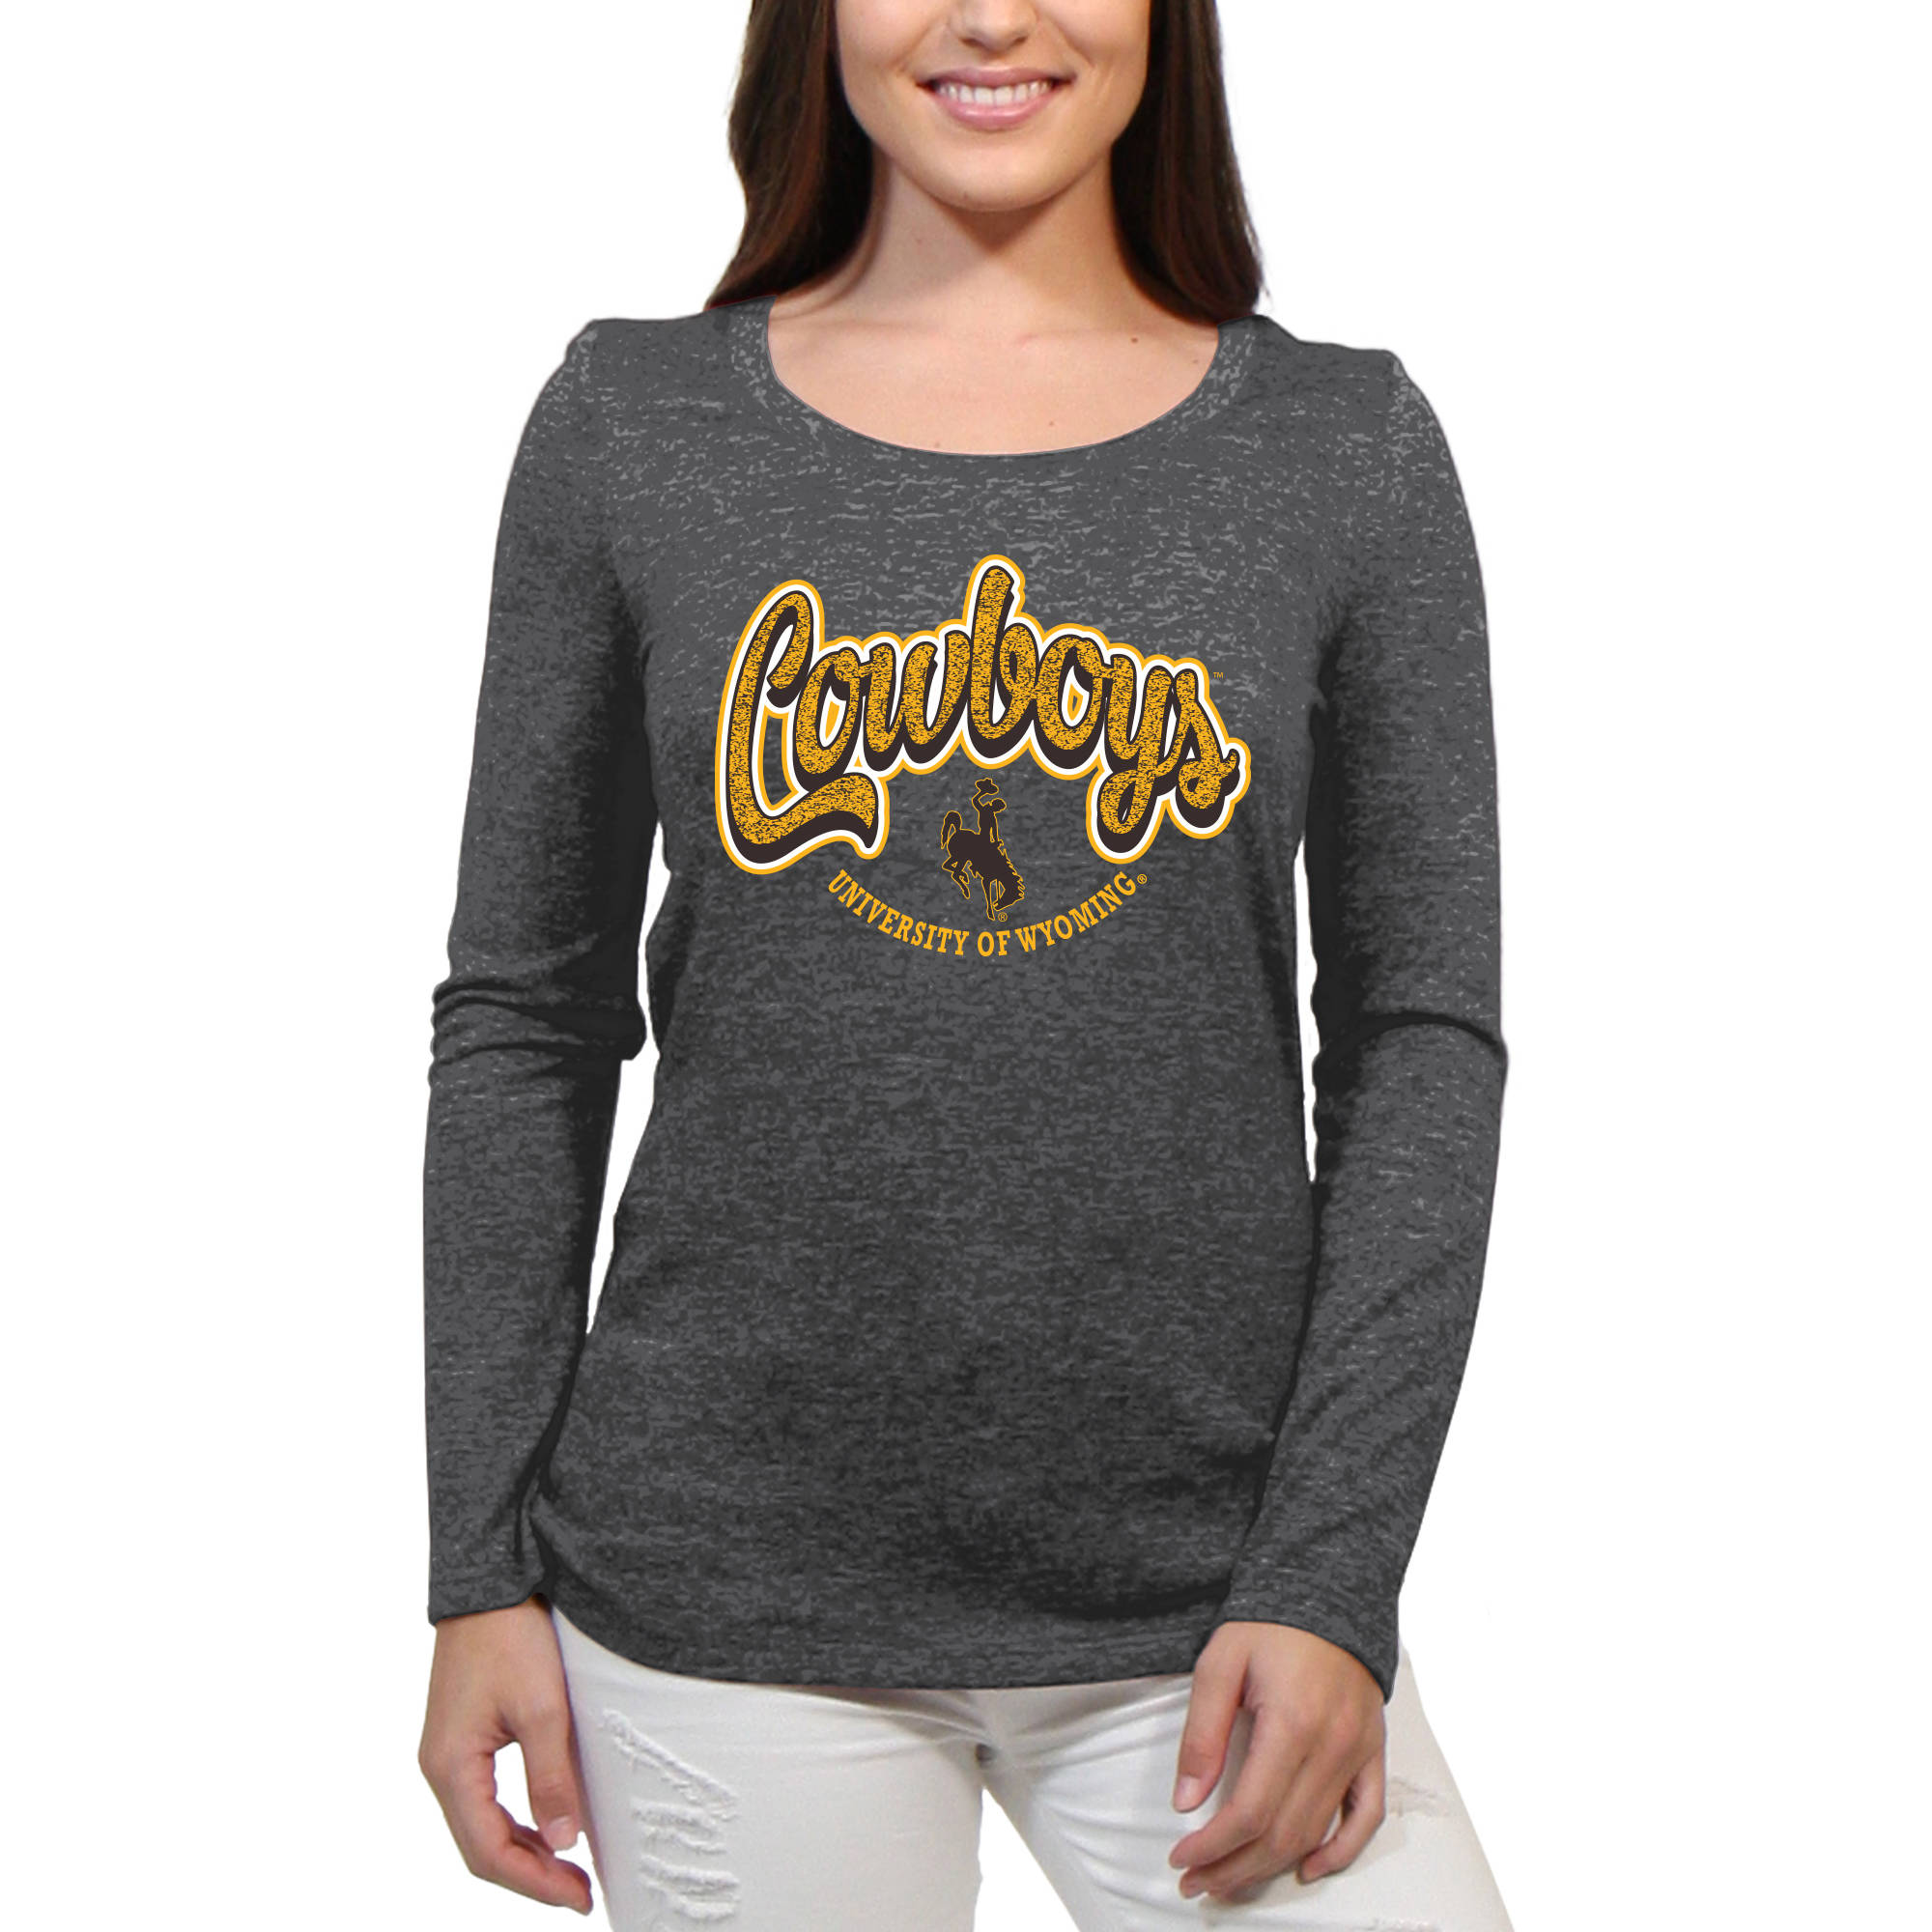 Wyoming Cowboys Funky Script Women'S/Juniors Team Long Sleeve Scoop Neck Shirt